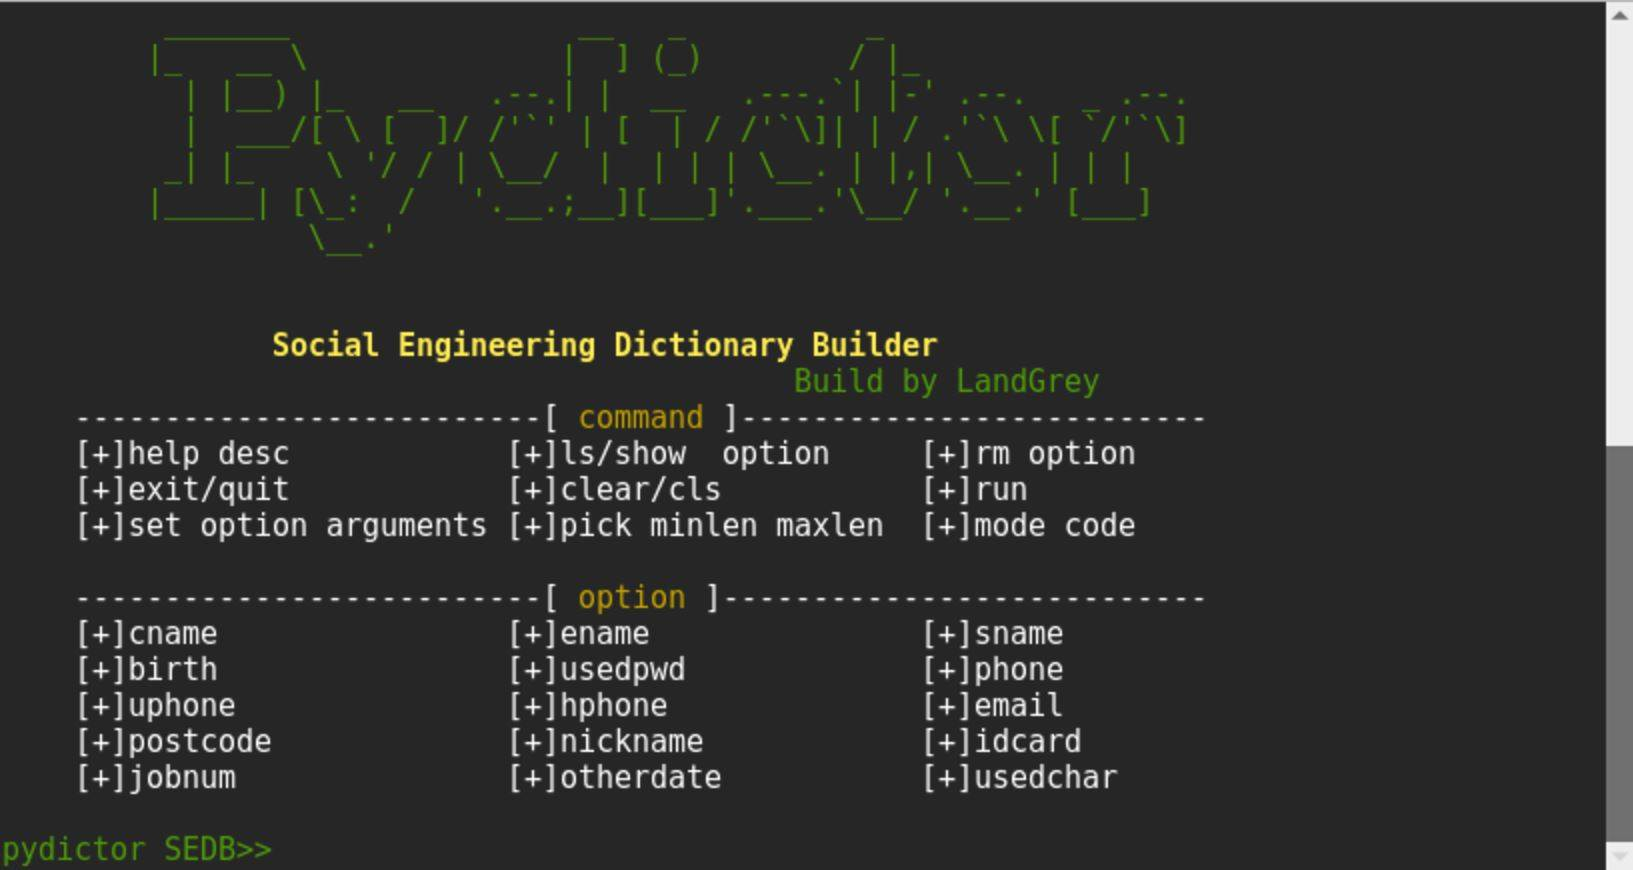 Capture 10 - pydictor: Create dictionaries for brute force attacks